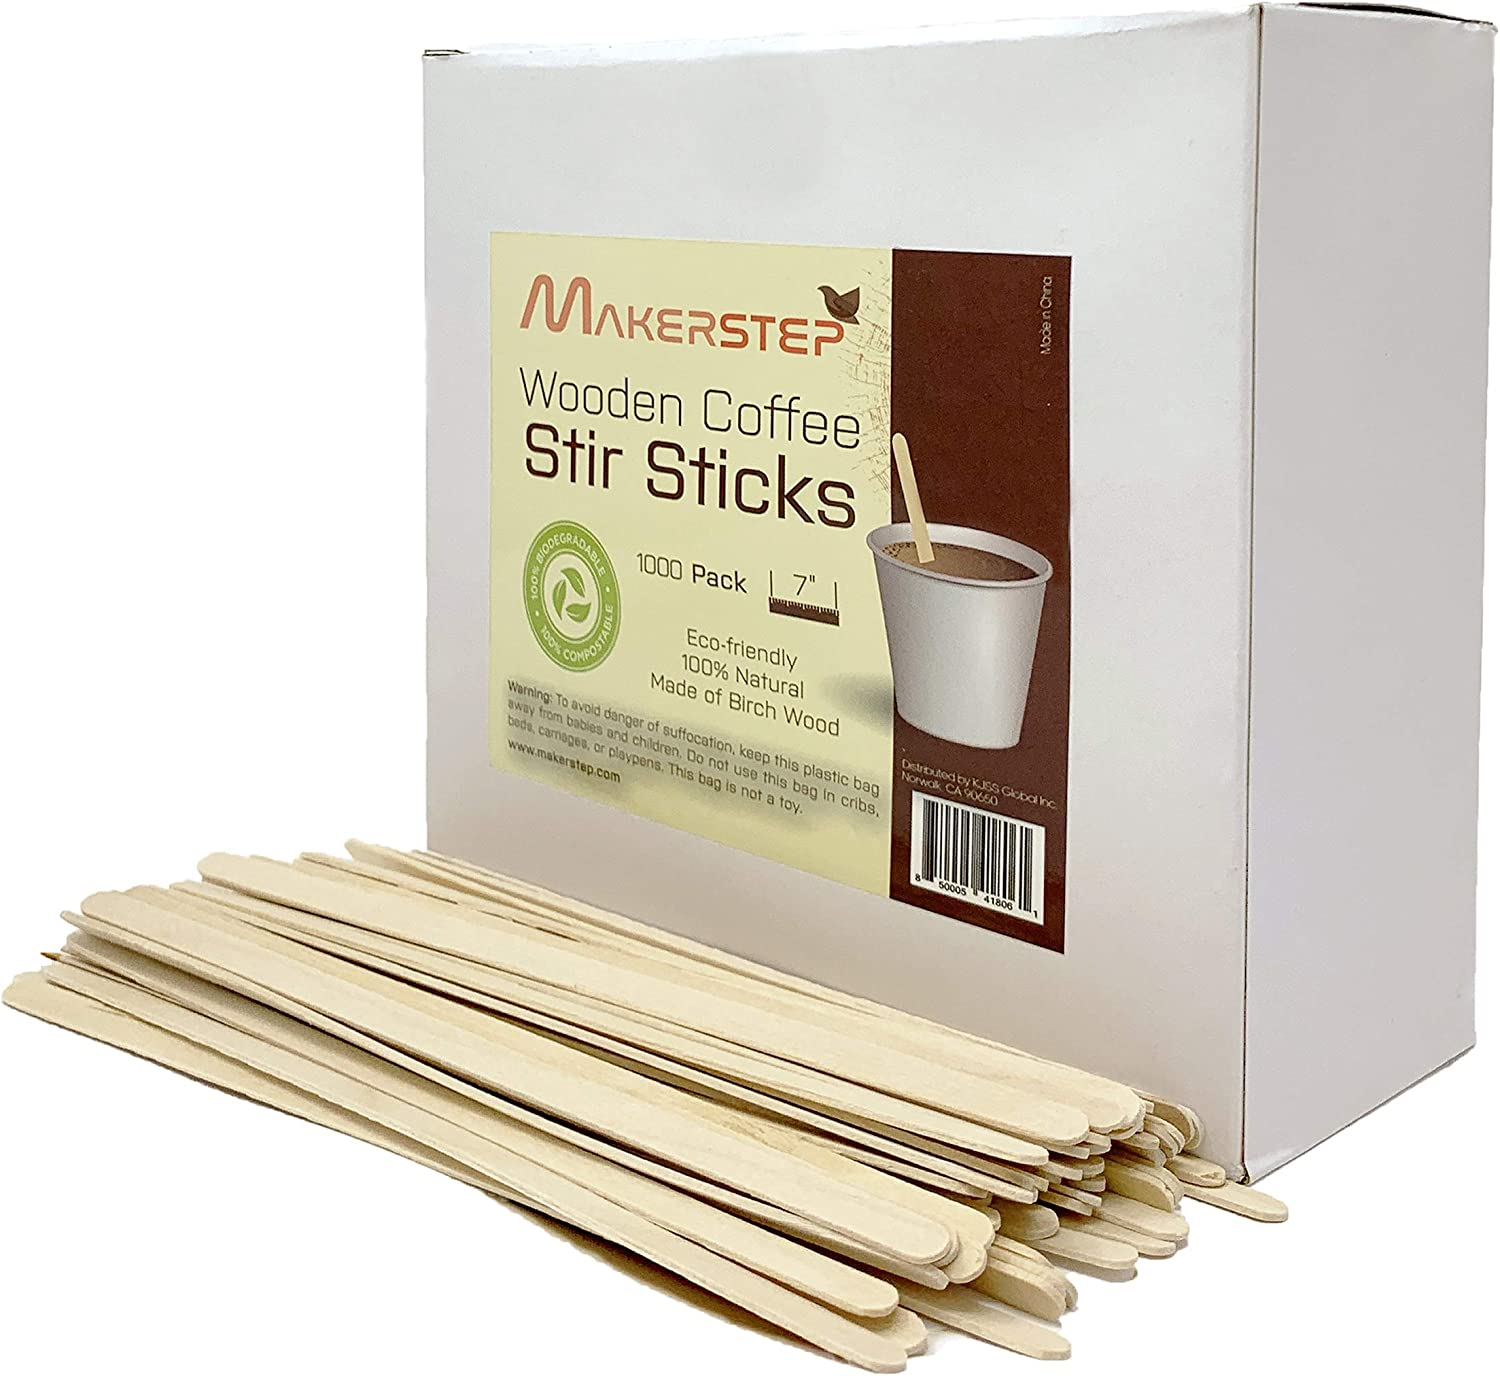 Makerstep Wooden Coffee Stir Sticks 7 Inch with Storage Box, 1000 Count, Sturdy Birch Wood Stirrers. Eco-friendly, Splinter Free, Round Ends.for Tea, Beverage, Craft, and Popsicle